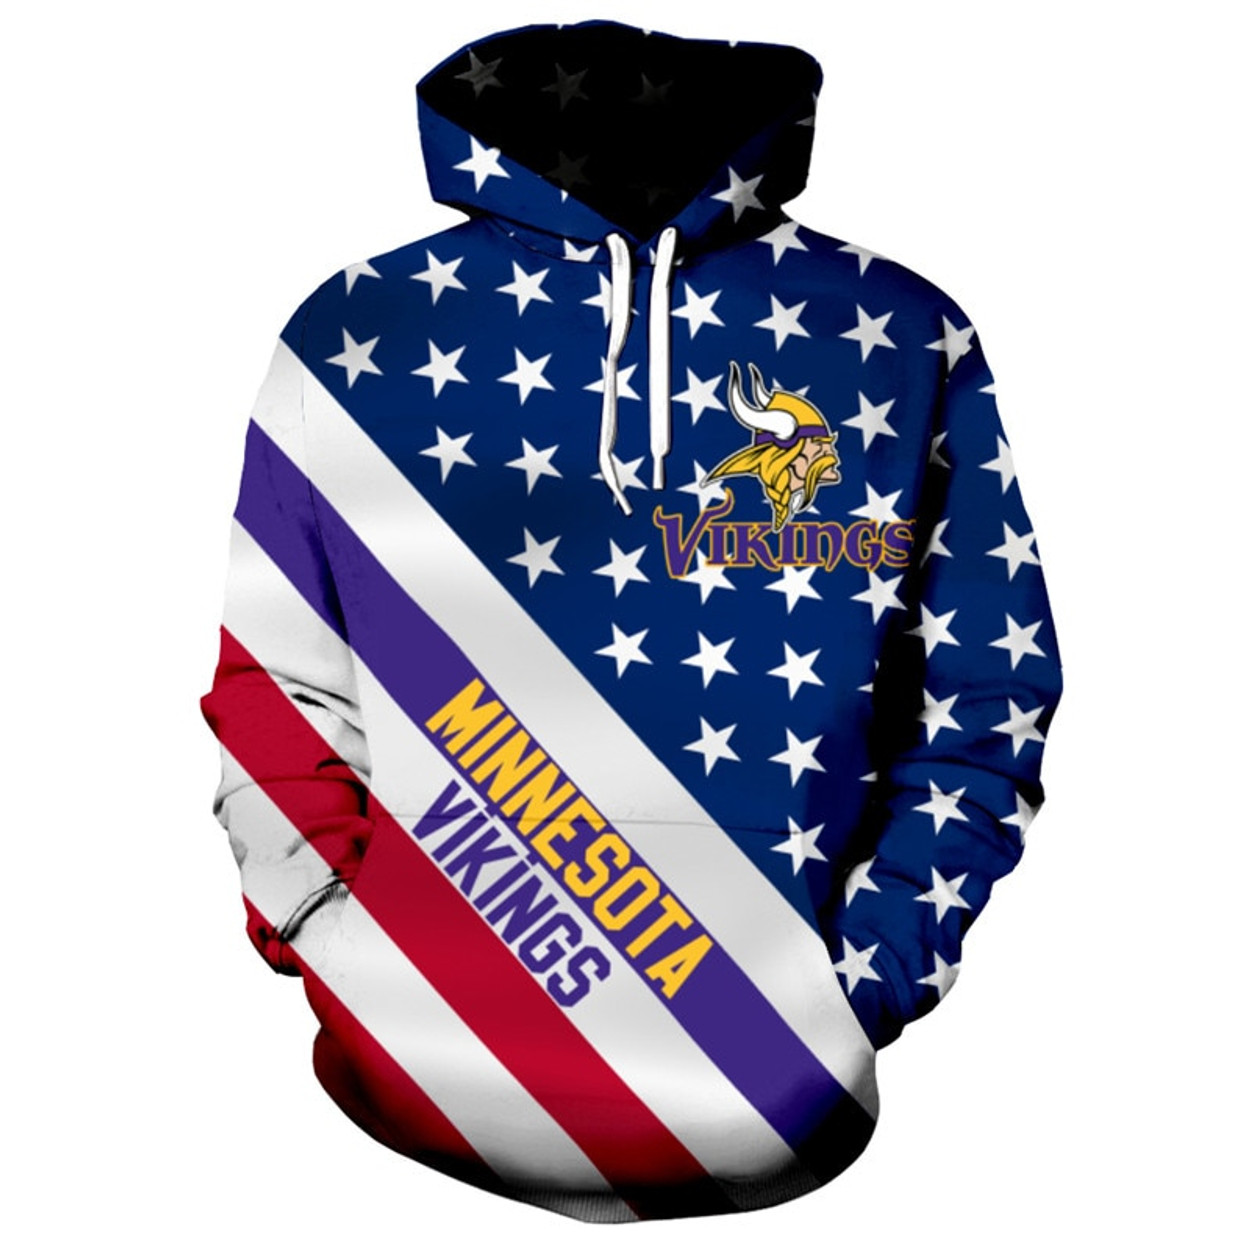 (OFFICIALLY-LICENSED-N.F.L.MINNESOTA-VIKINGS 3D-GRAPHIC-PRINTED-PATRIOTIC-STARS  ... 81c9372a3